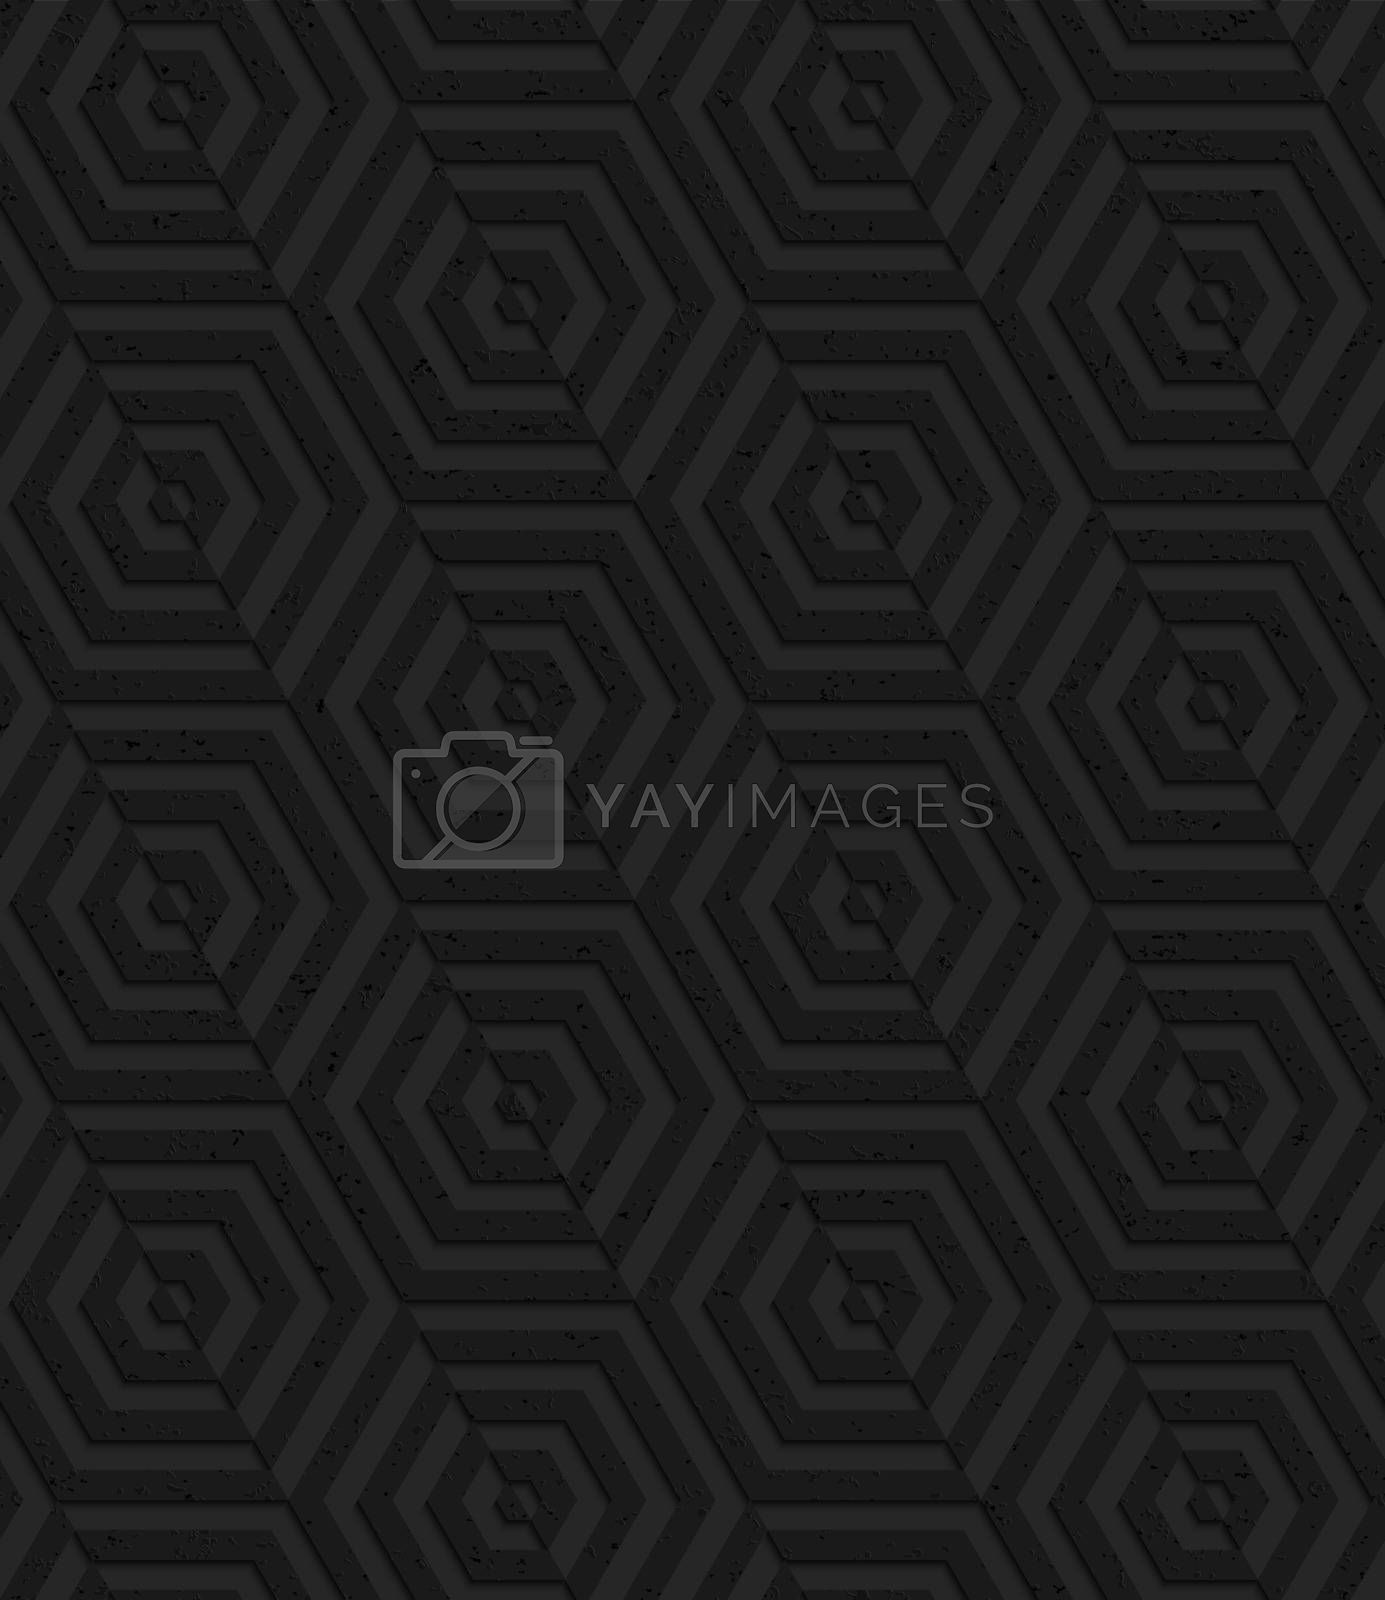 Seamless geometric background. Pattern with 3D texture and realistic shadow.Textured black plastic diagonally cut hexagons.